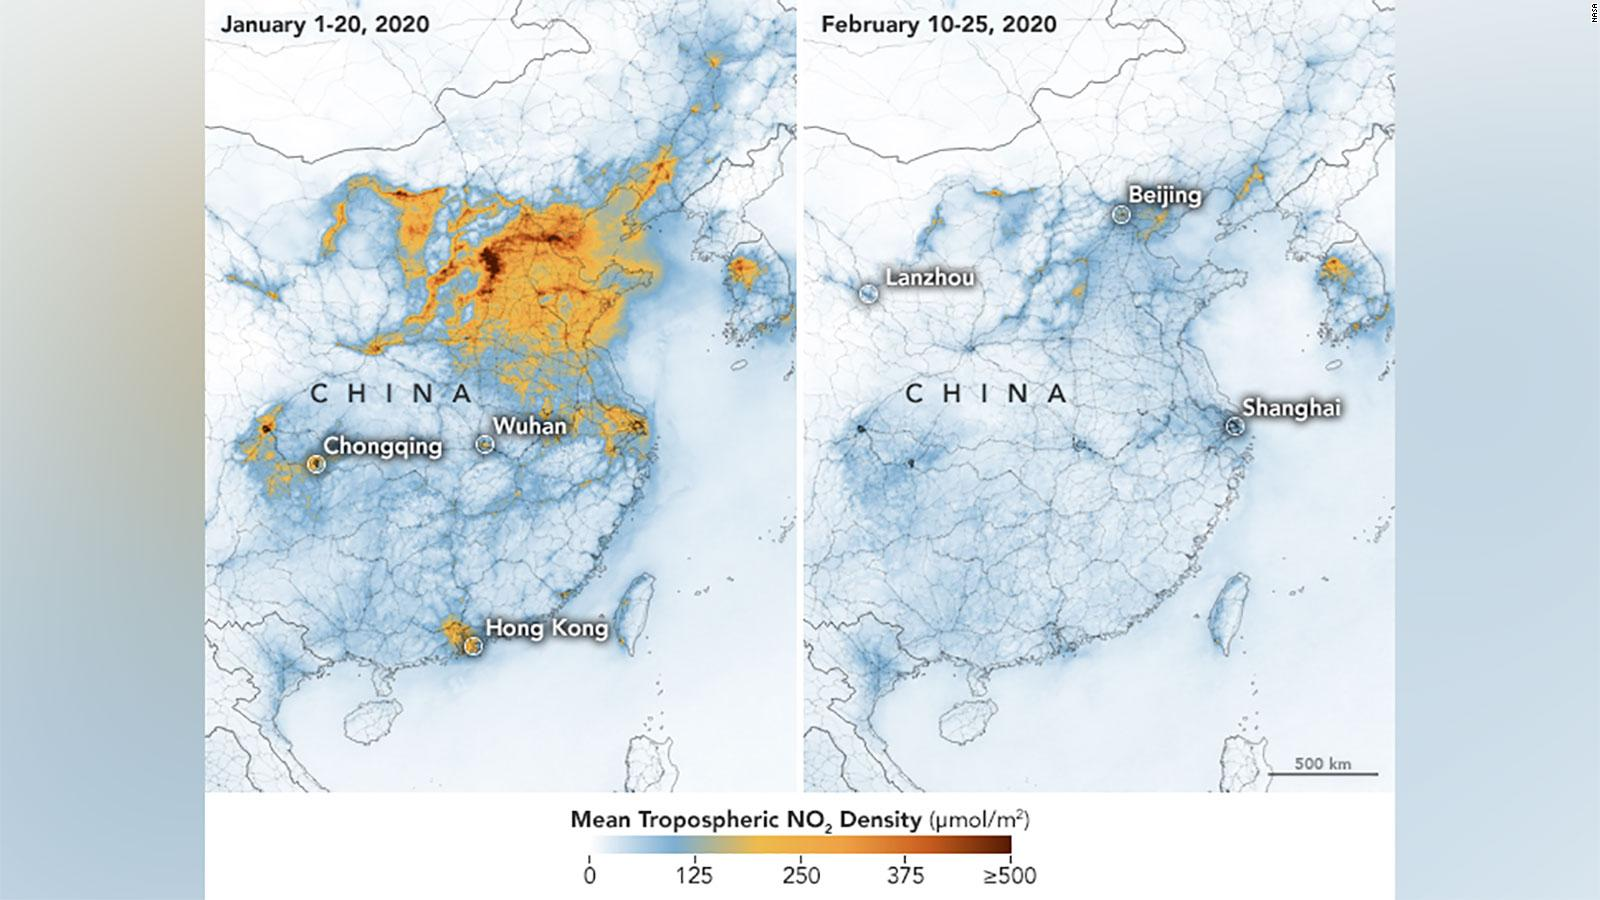 NASA and European Space Agency (ESA) pollution monitoring satellites have detected significant decreases in nitrogen dioxide (NO2) over China. There is evidence that the change is at least partly related to the economic slowdown following the outbreak of coronavirus.